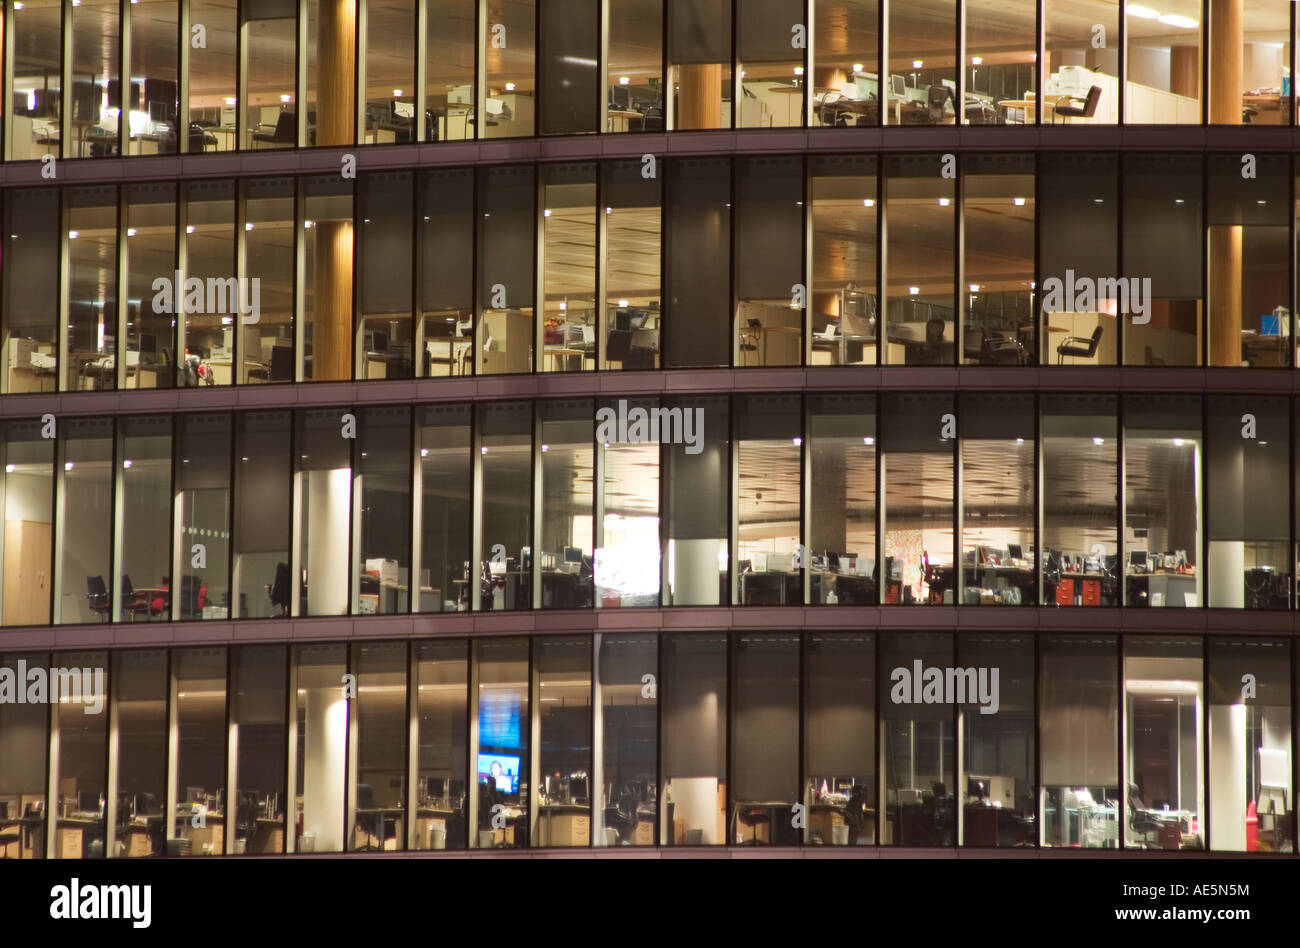 Window at night from outside - Several Floors Of Office Building Seen From The Outside Through Glass Windows At Night Stock